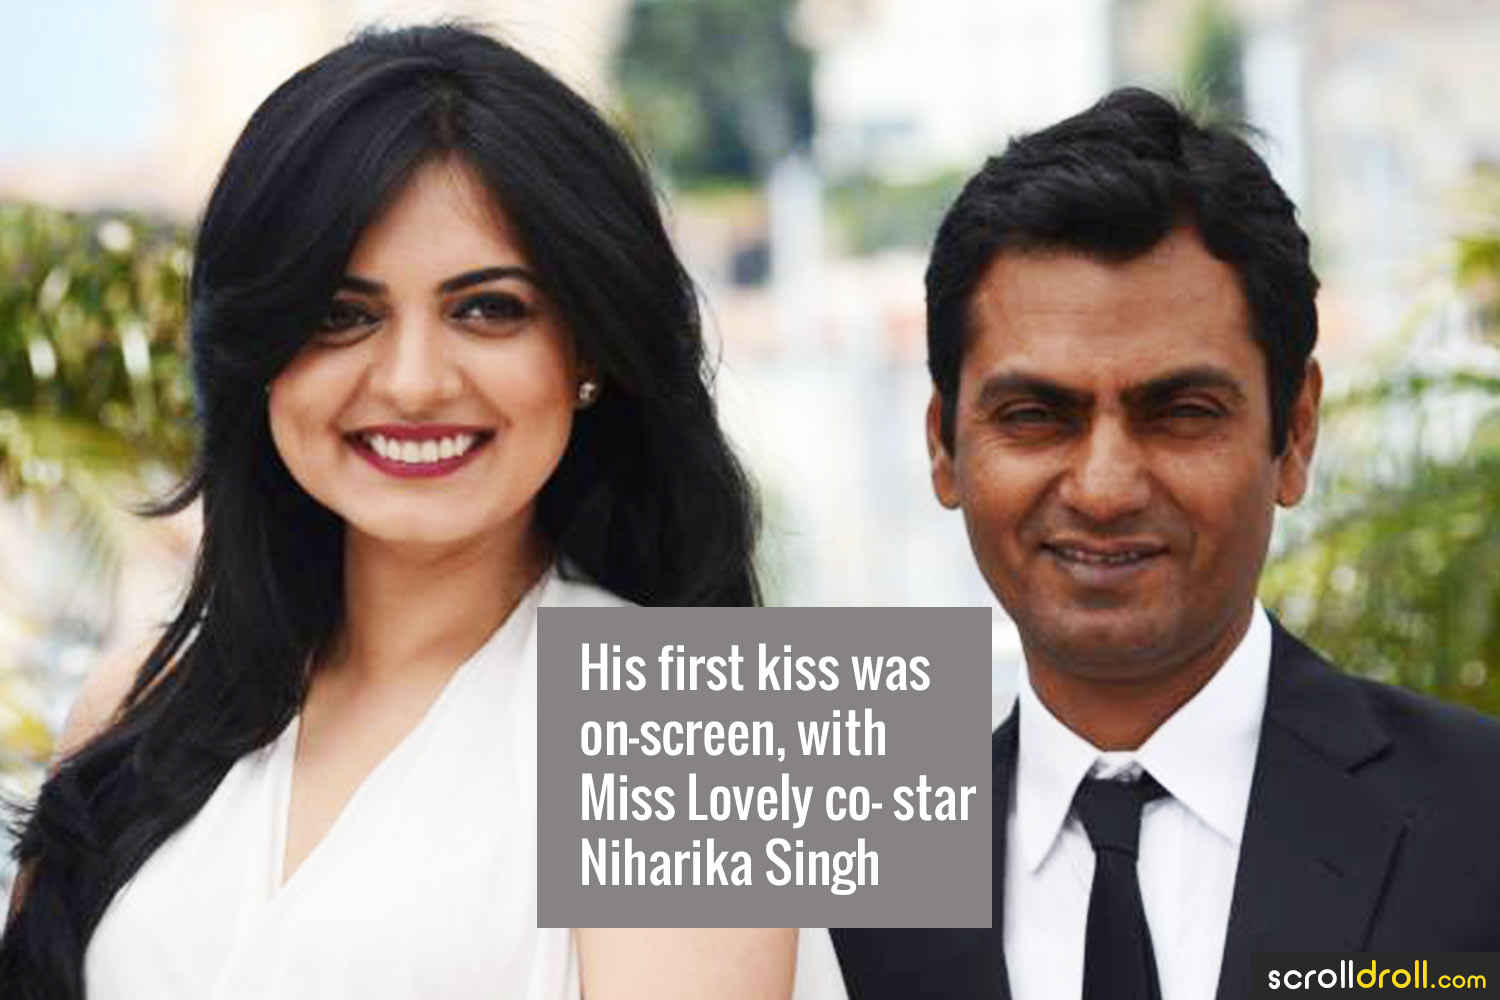 Facts about Nawazuddin Siddique-His first kiss was on-screen,with Miss Lovely co-star Niharika Singh